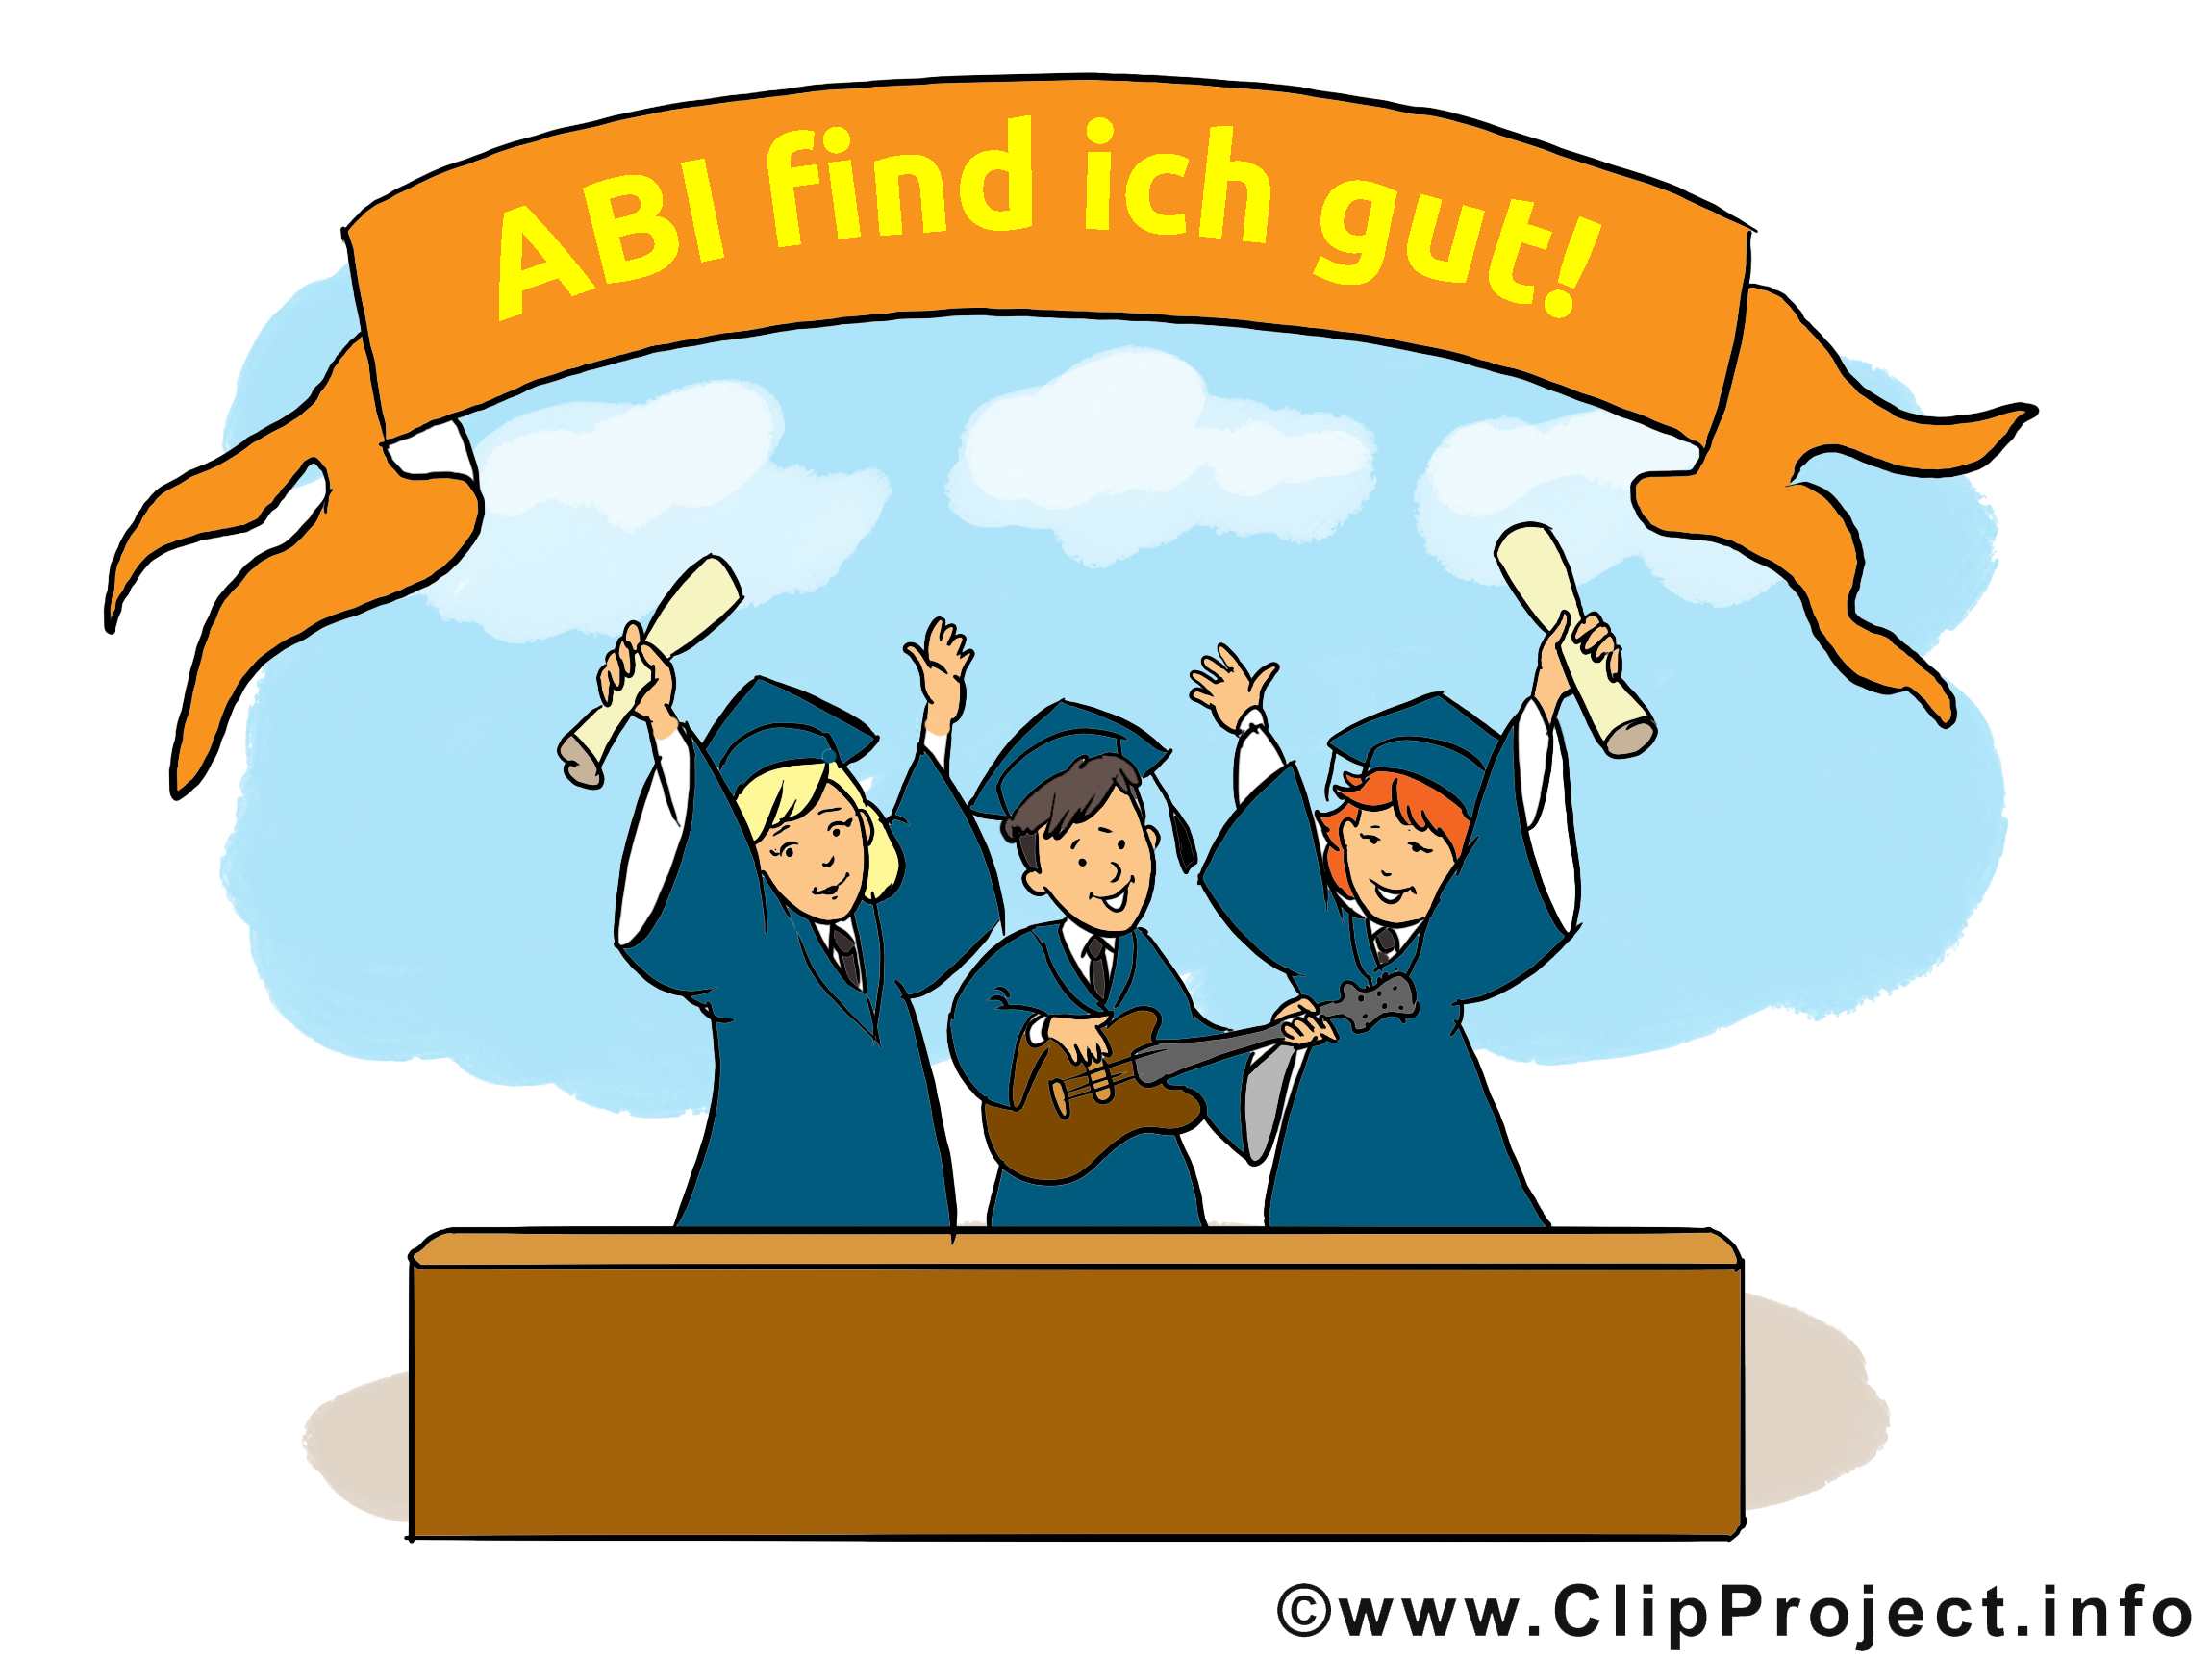 Alles gute clipart image library Alles Gute zum Abitur Bild, Karte, Clipart image library